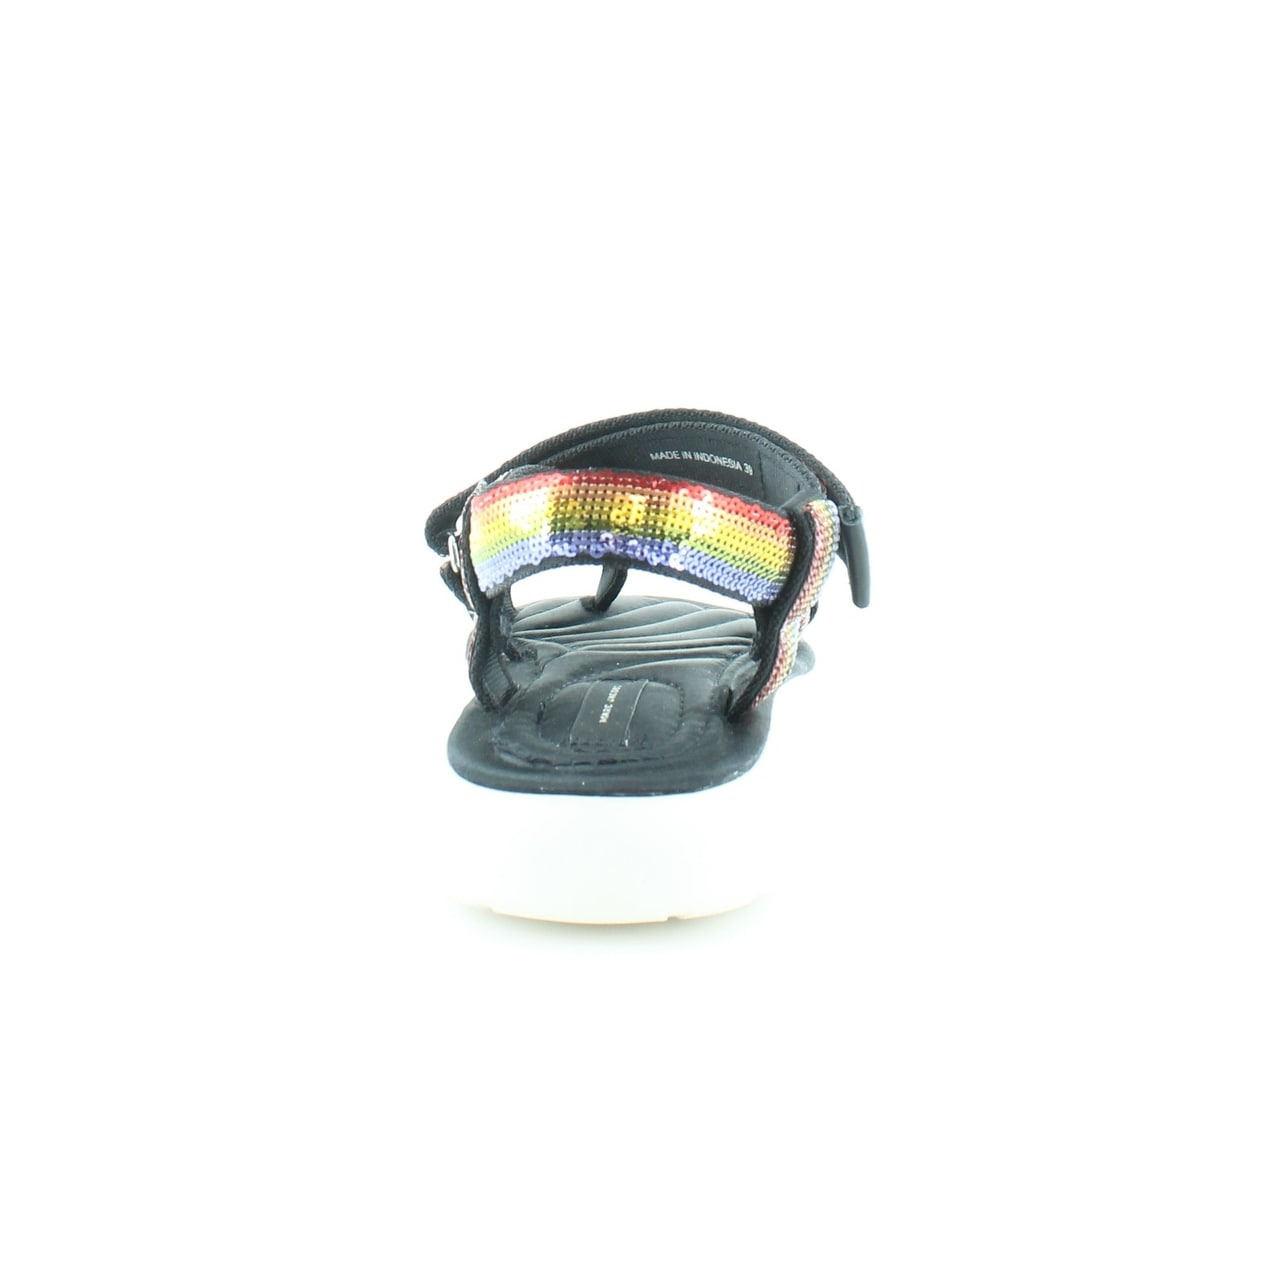 fa44491a96c Shop Marc By Marc Jacobs Comet Women s Sandals Rainbow - Free Shipping  Today - Overstock - 21678618